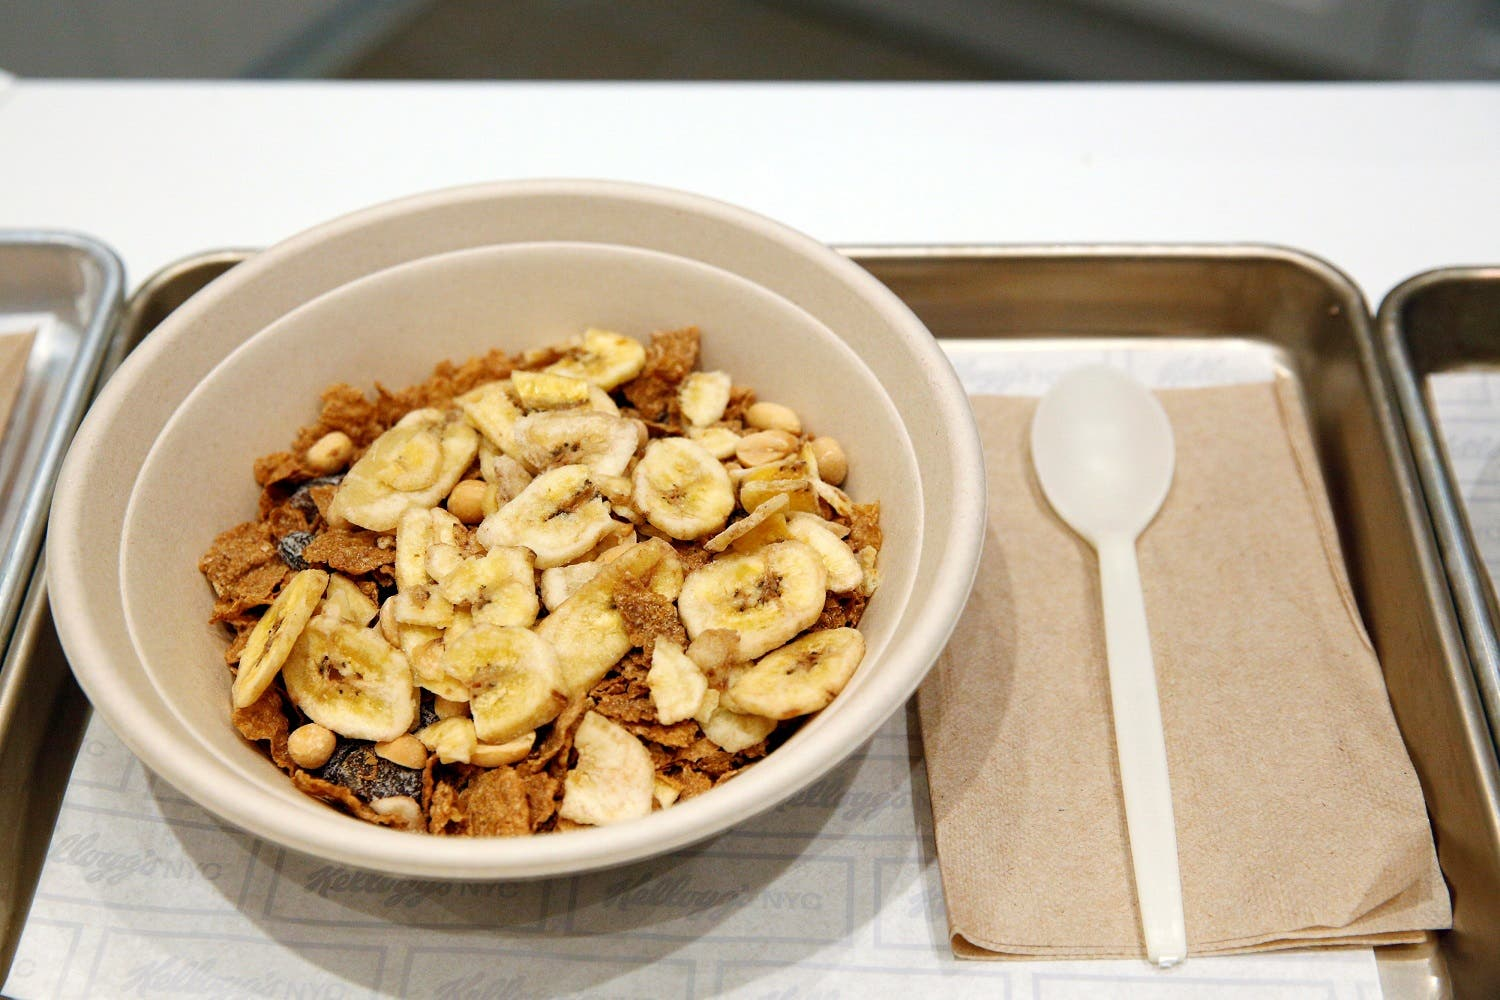 A bowl of 'The Circus' cereal, which is Raisin Bran with toasted peanuts and banana chips, is displayed at the Kellogg's NYC cafe in Midtown Manhattan in New York City, U.S., June 29, 2016. REUTERS